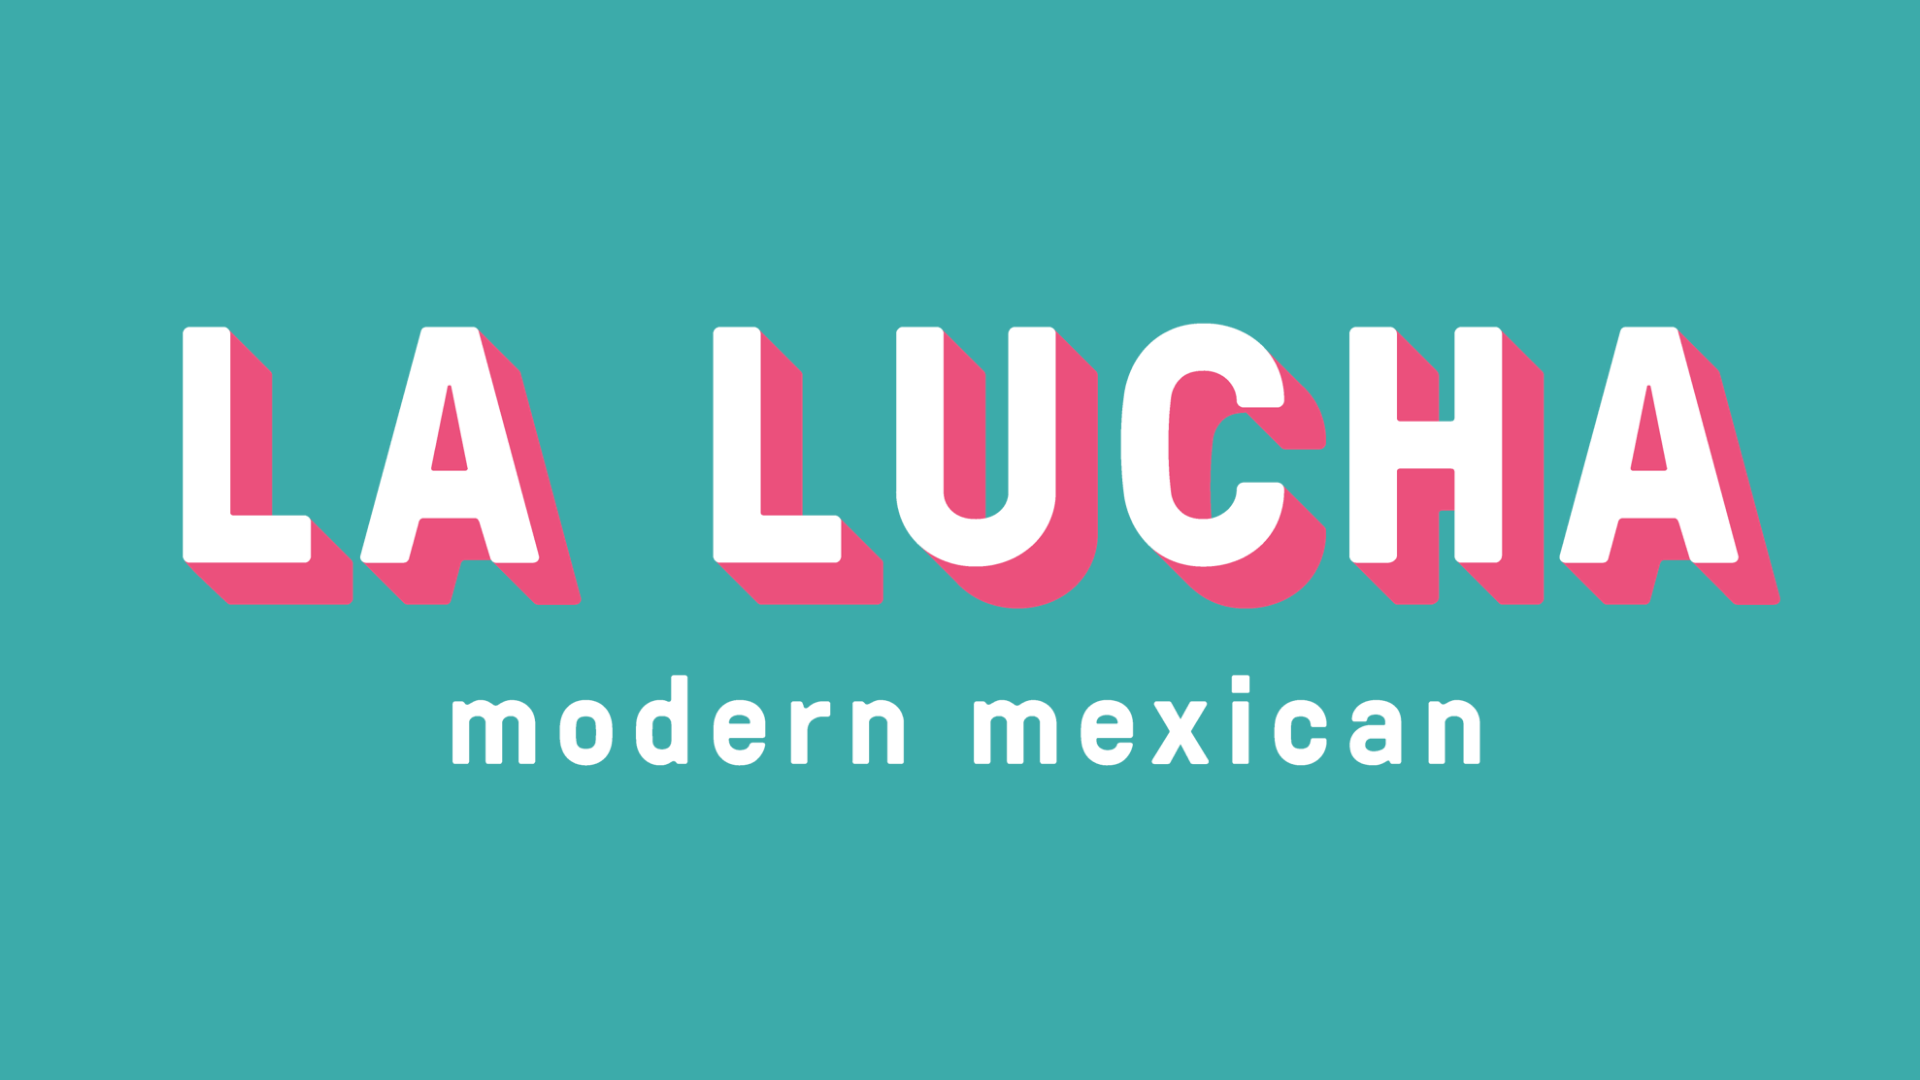 La Lucha - Restaurant - - Social Media Management & Advertising- Content Creation- Newsletter